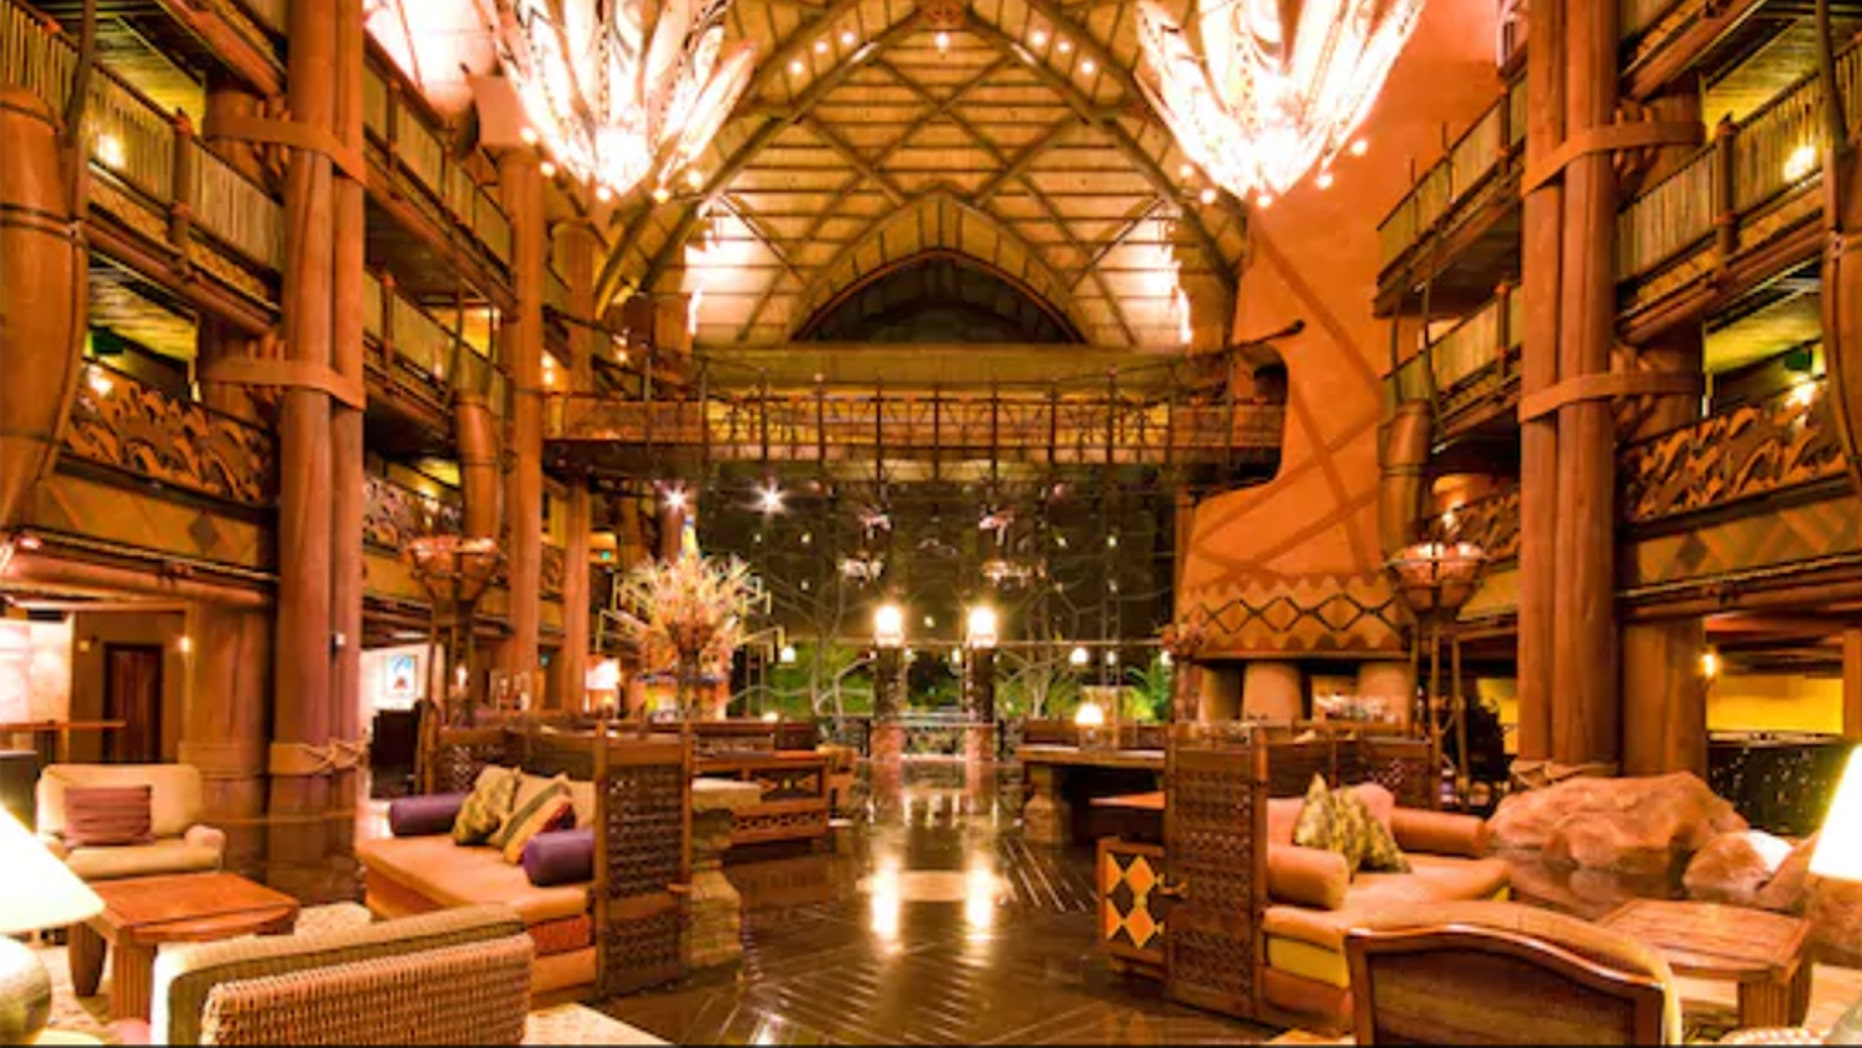 A woman entered Disney's Animal Kingdom Lodge claiming a newborn was abandoned by a fleeing mother. Authorities determined she was actually the baby's mother.